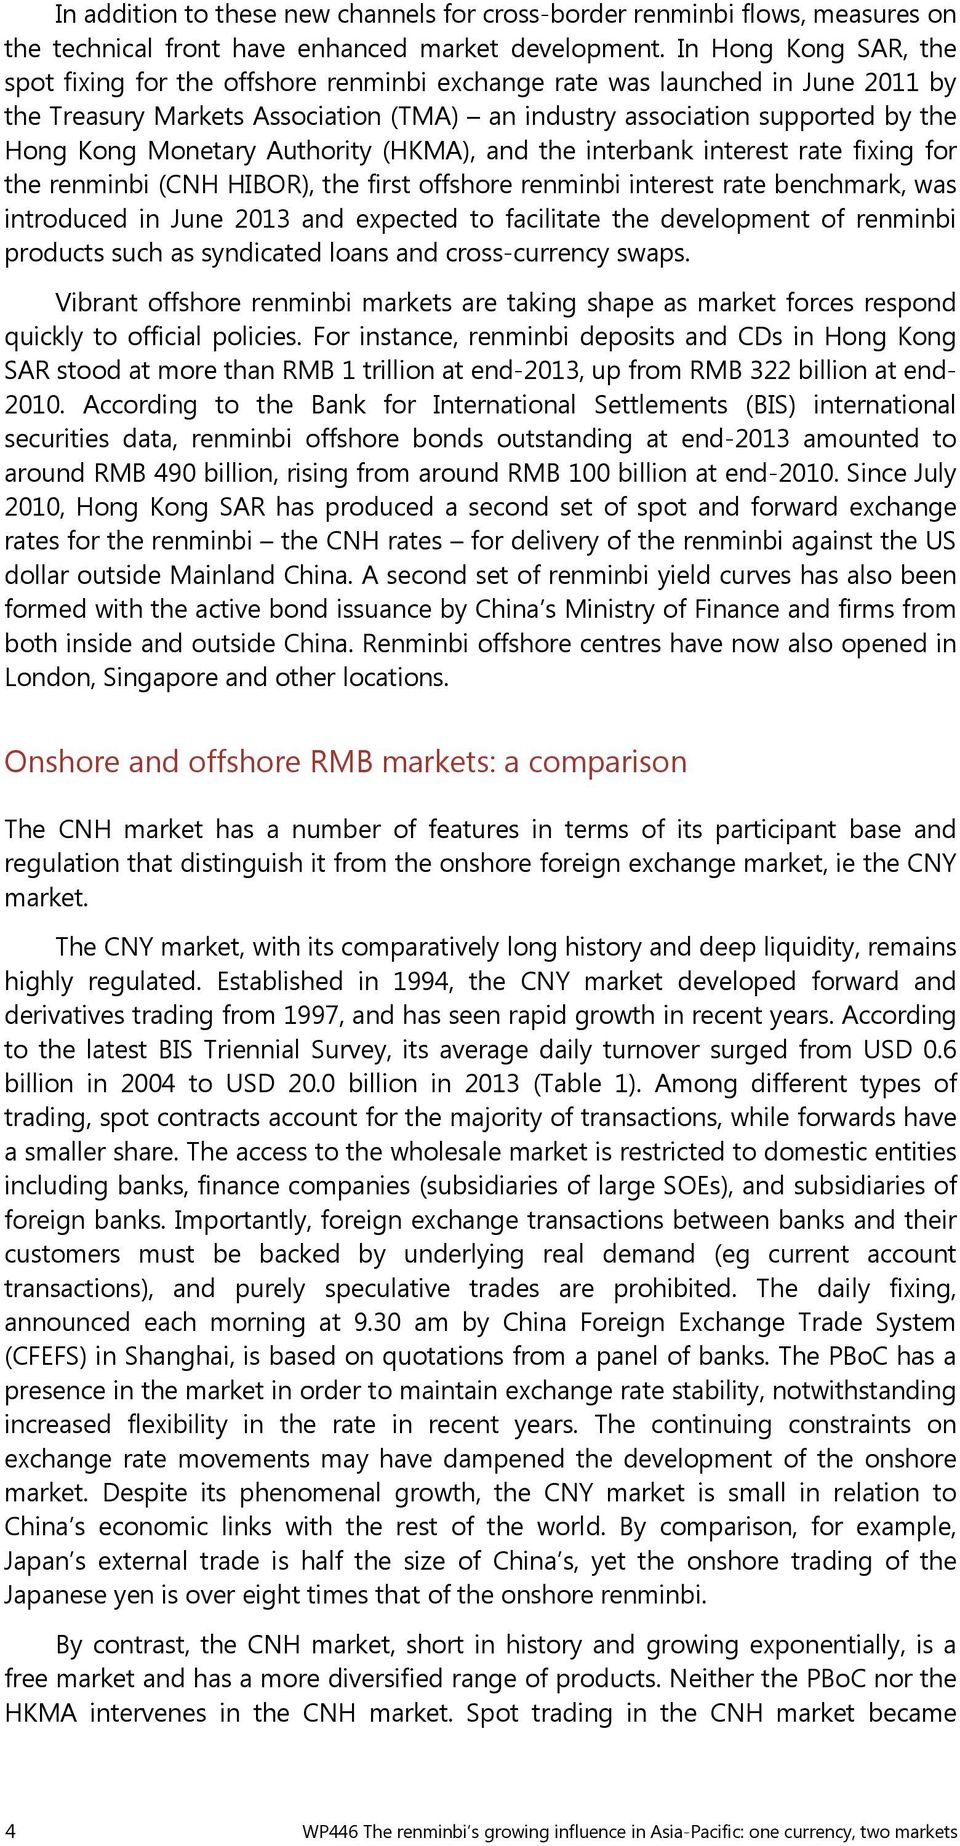 Monetary Authority (HKMA), and the interbank interest rate fixing for the renminbi (CNH HIBOR), the first offshore renminbi interest rate benchmark, was introduced in June 2013 and expected to